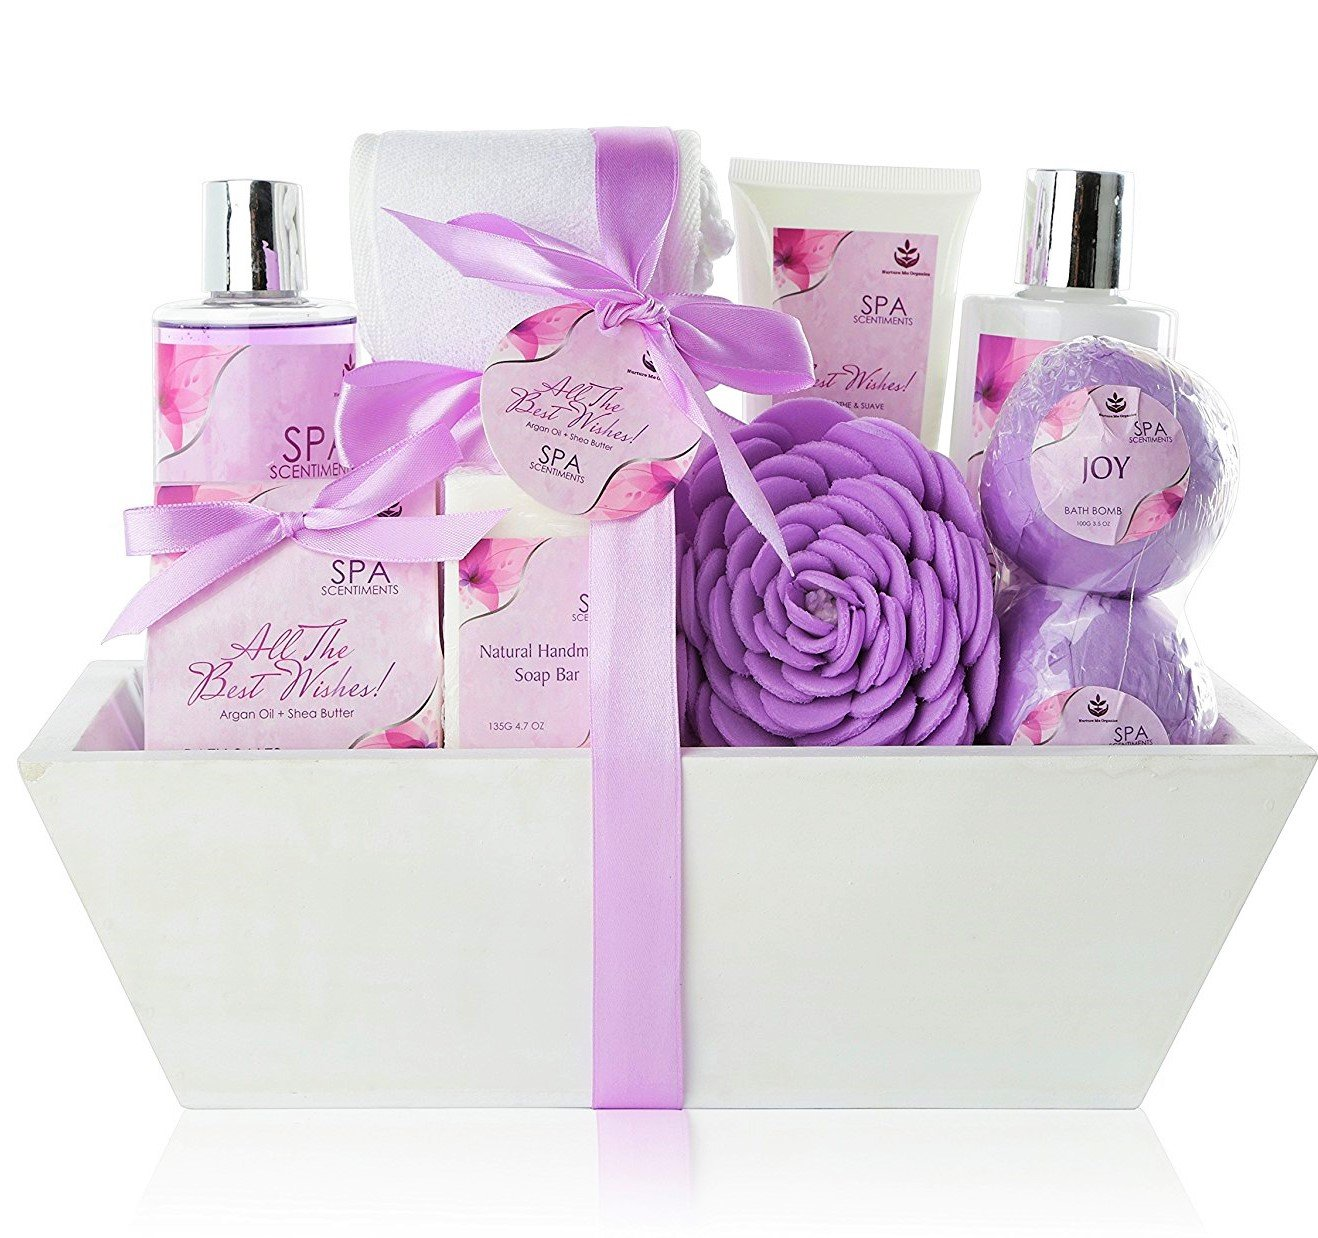 Premium Large Spa Basket, ''All The Best Wishes'' Gift Basket for Women. Bath & Body 10-Piece Gift Set. Best Christmas Gift for Women with Bath Bombs, Shower Gel, Lotions, Accesories, etc!